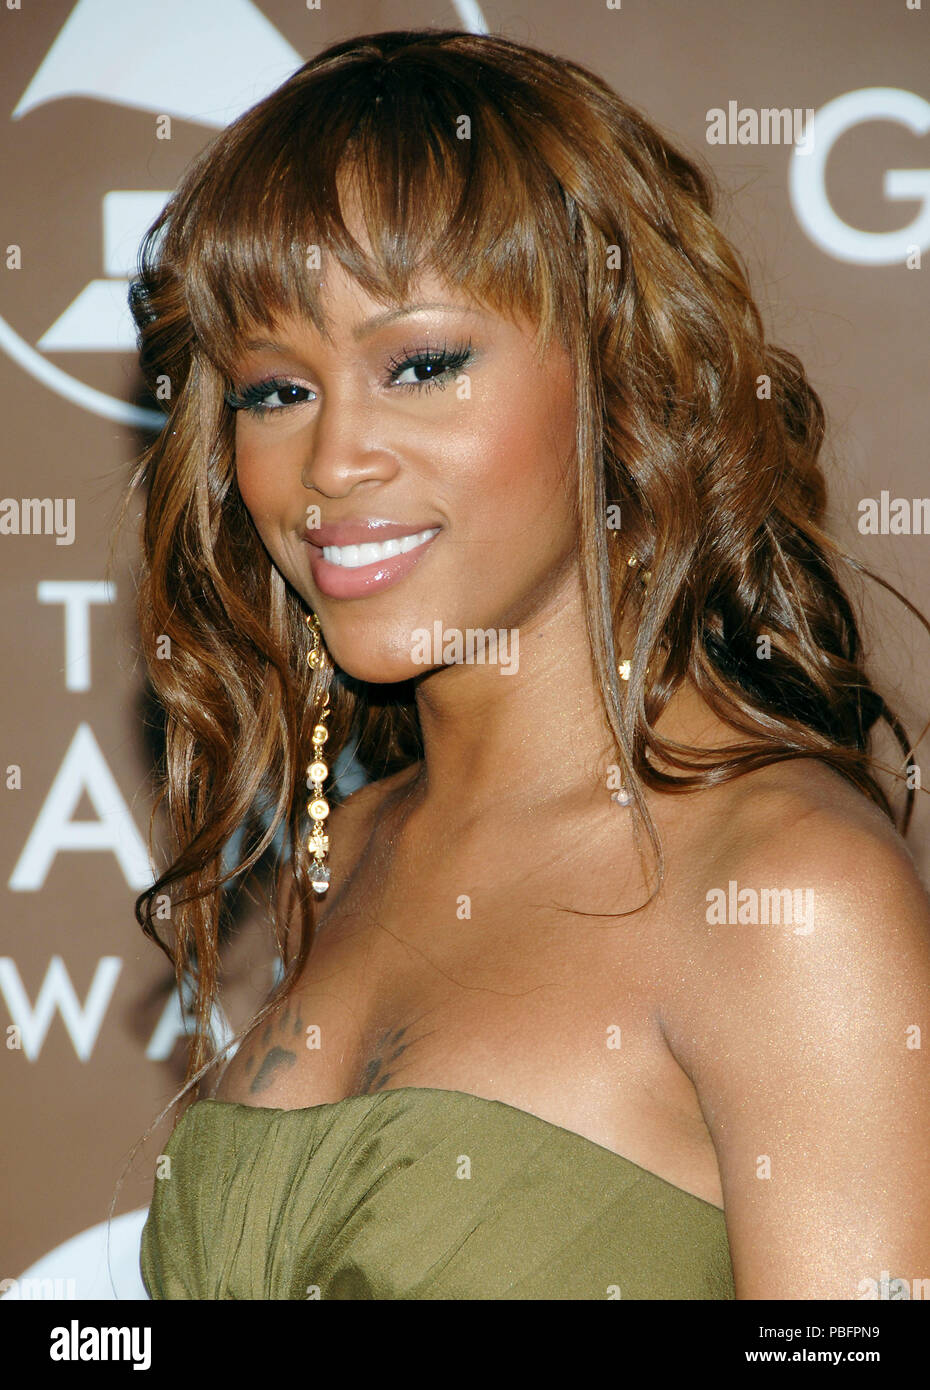 Eve arriving at the 48th Grammy Awards at the  Staples Center In Los Angeles, Wednesday February 8, 200611_Eve293 Red Carpet Event, Vertical, USA, Film Industry, Celebrities,  Photography, Bestof, Arts Culture and Entertainment, Topix Celebrities fashion /  Vertical, Best of, Event in Hollywood Life - California,  Red Carpet and backstage, USA, Film Industry, Celebrities,  movie celebrities, TV celebrities, Music celebrities, Photography, Bestof, Arts Culture and Entertainment,  Topix, headshot, vertical, one person,, from the year , 2006, inquiry tsuni@Gamma-USA.com - Stock Image